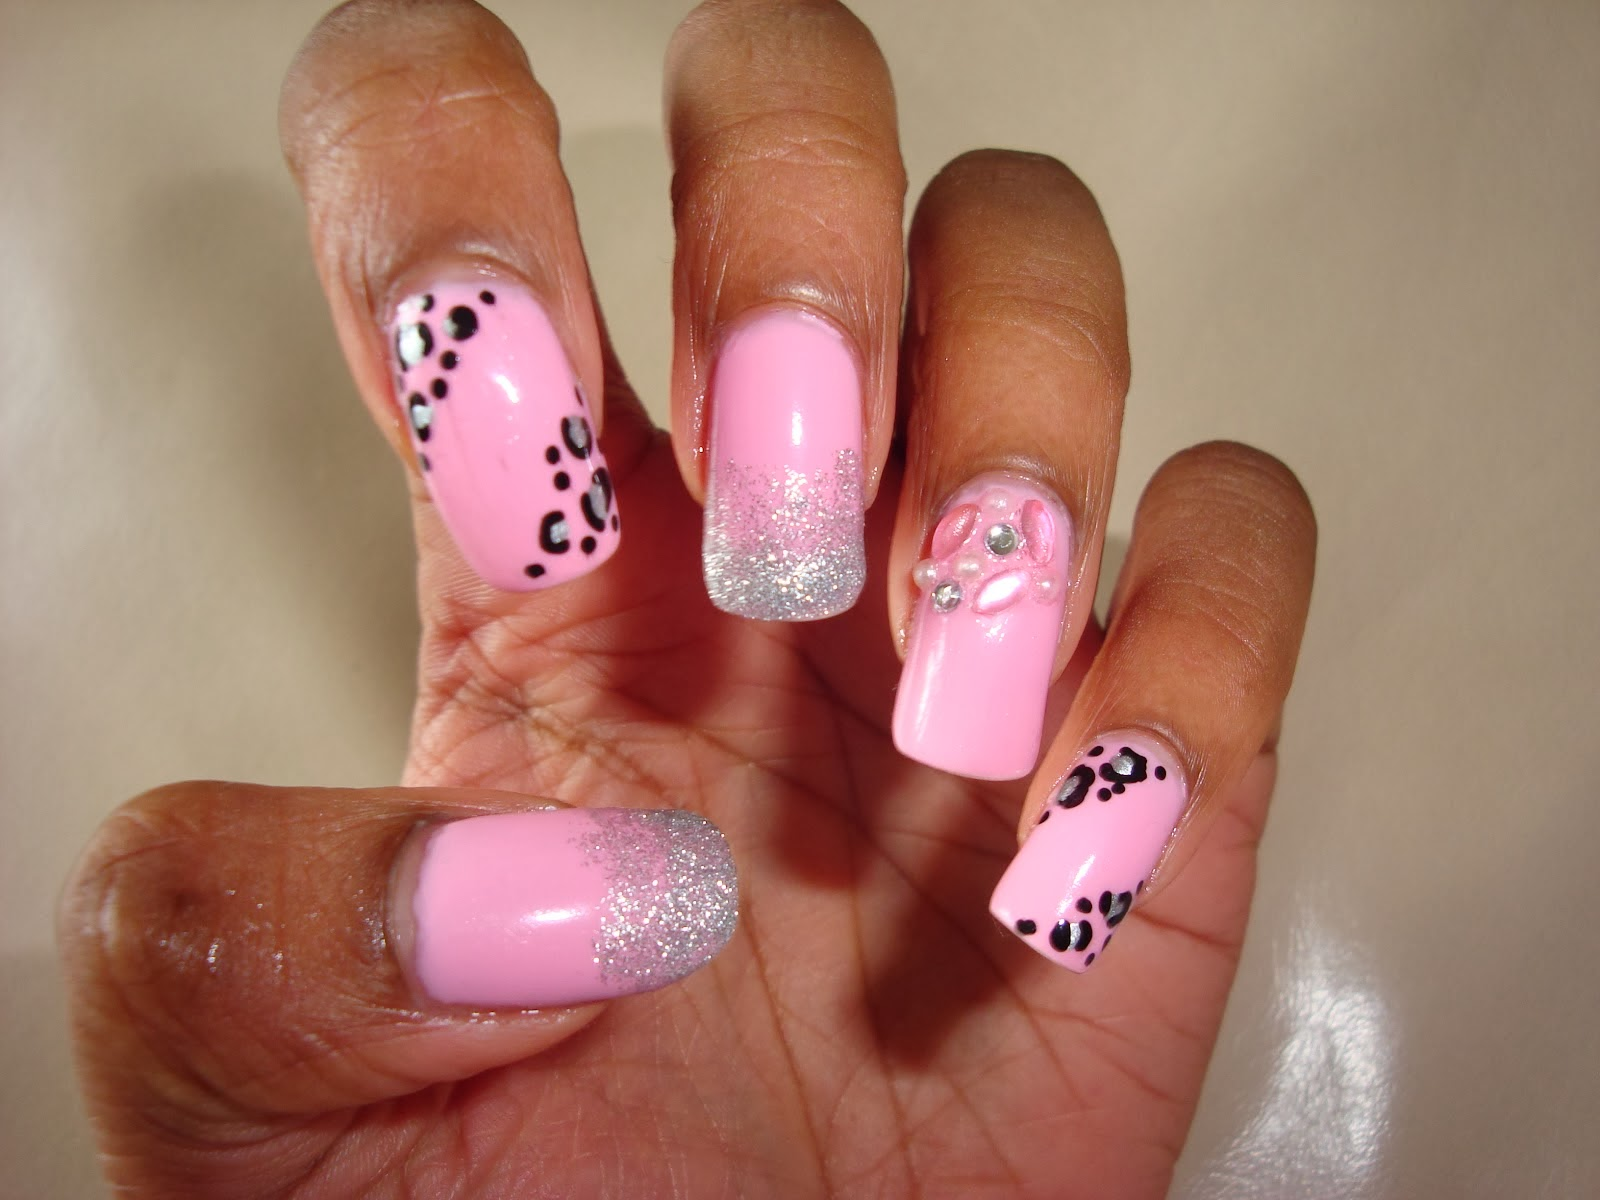 Best Nail Art Design: Best Nail Designs